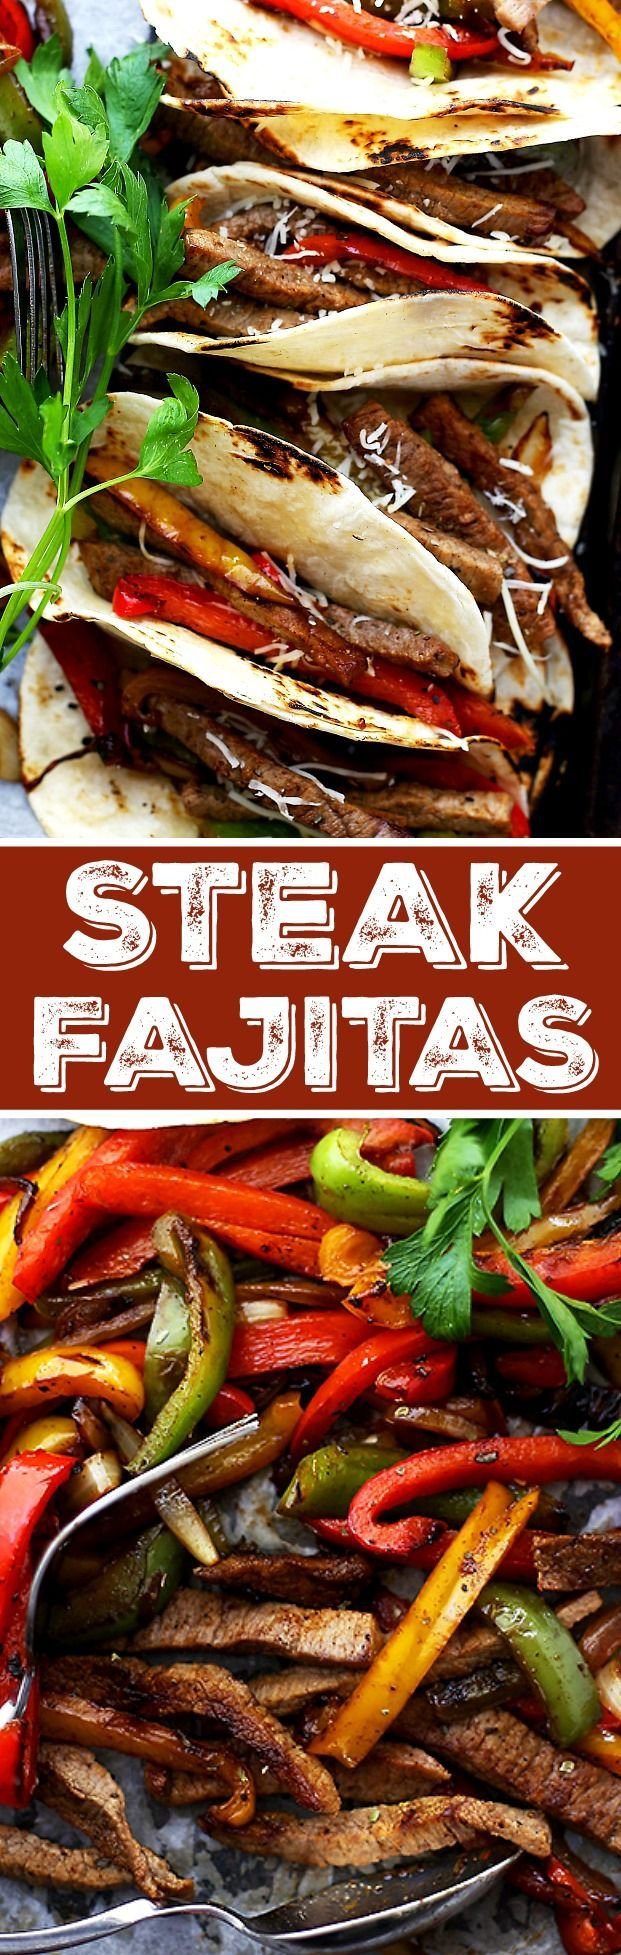 Steak Fajitas | www.diethood.com | Perfectly seasoned, classic steak fajitas with onions and peppers, wrapped in warm flour tortillas.